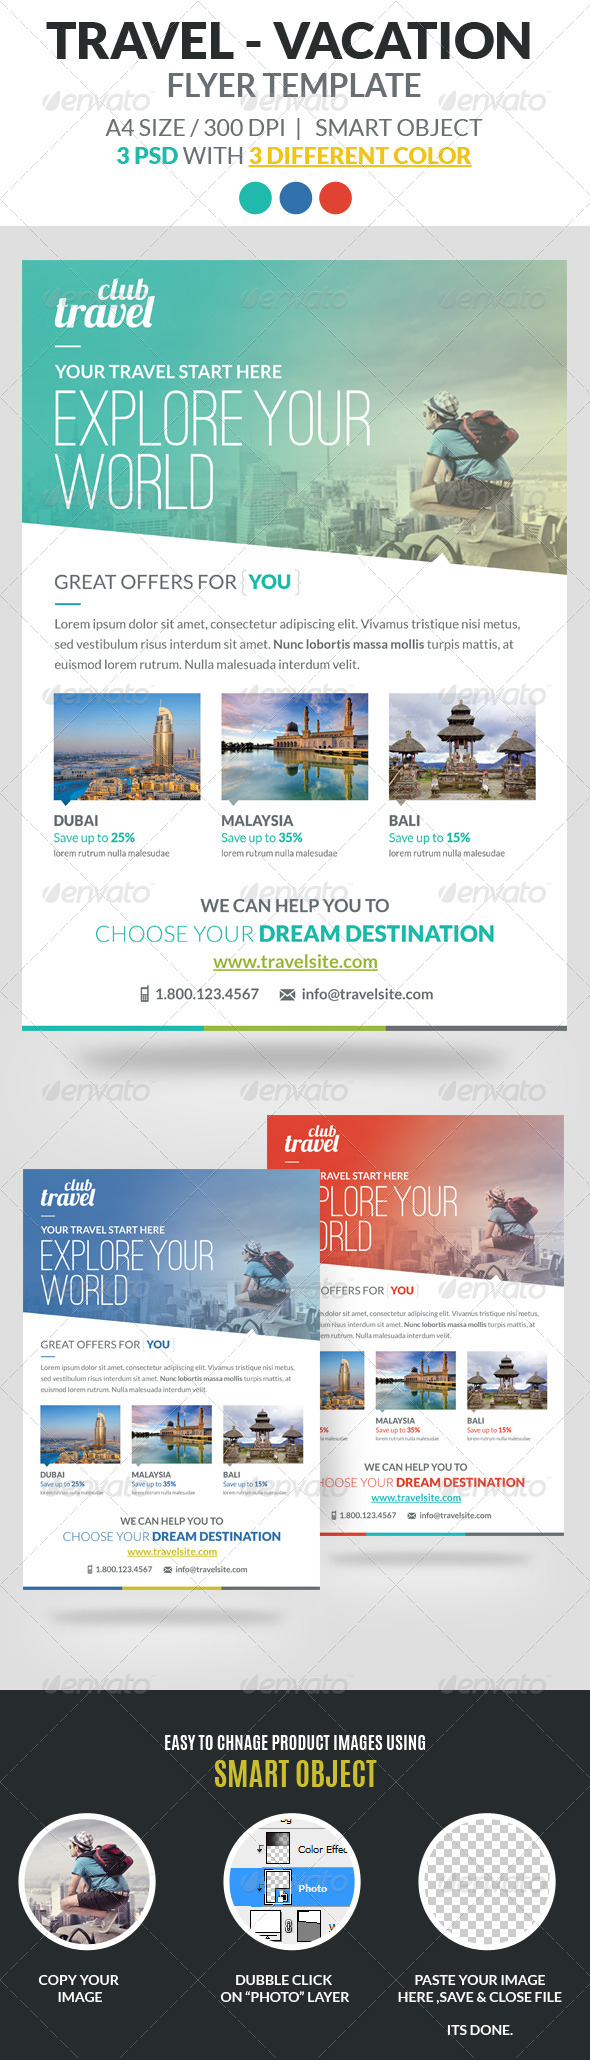 Travel Vacation Flyer Template By Webduck Graphicriver .